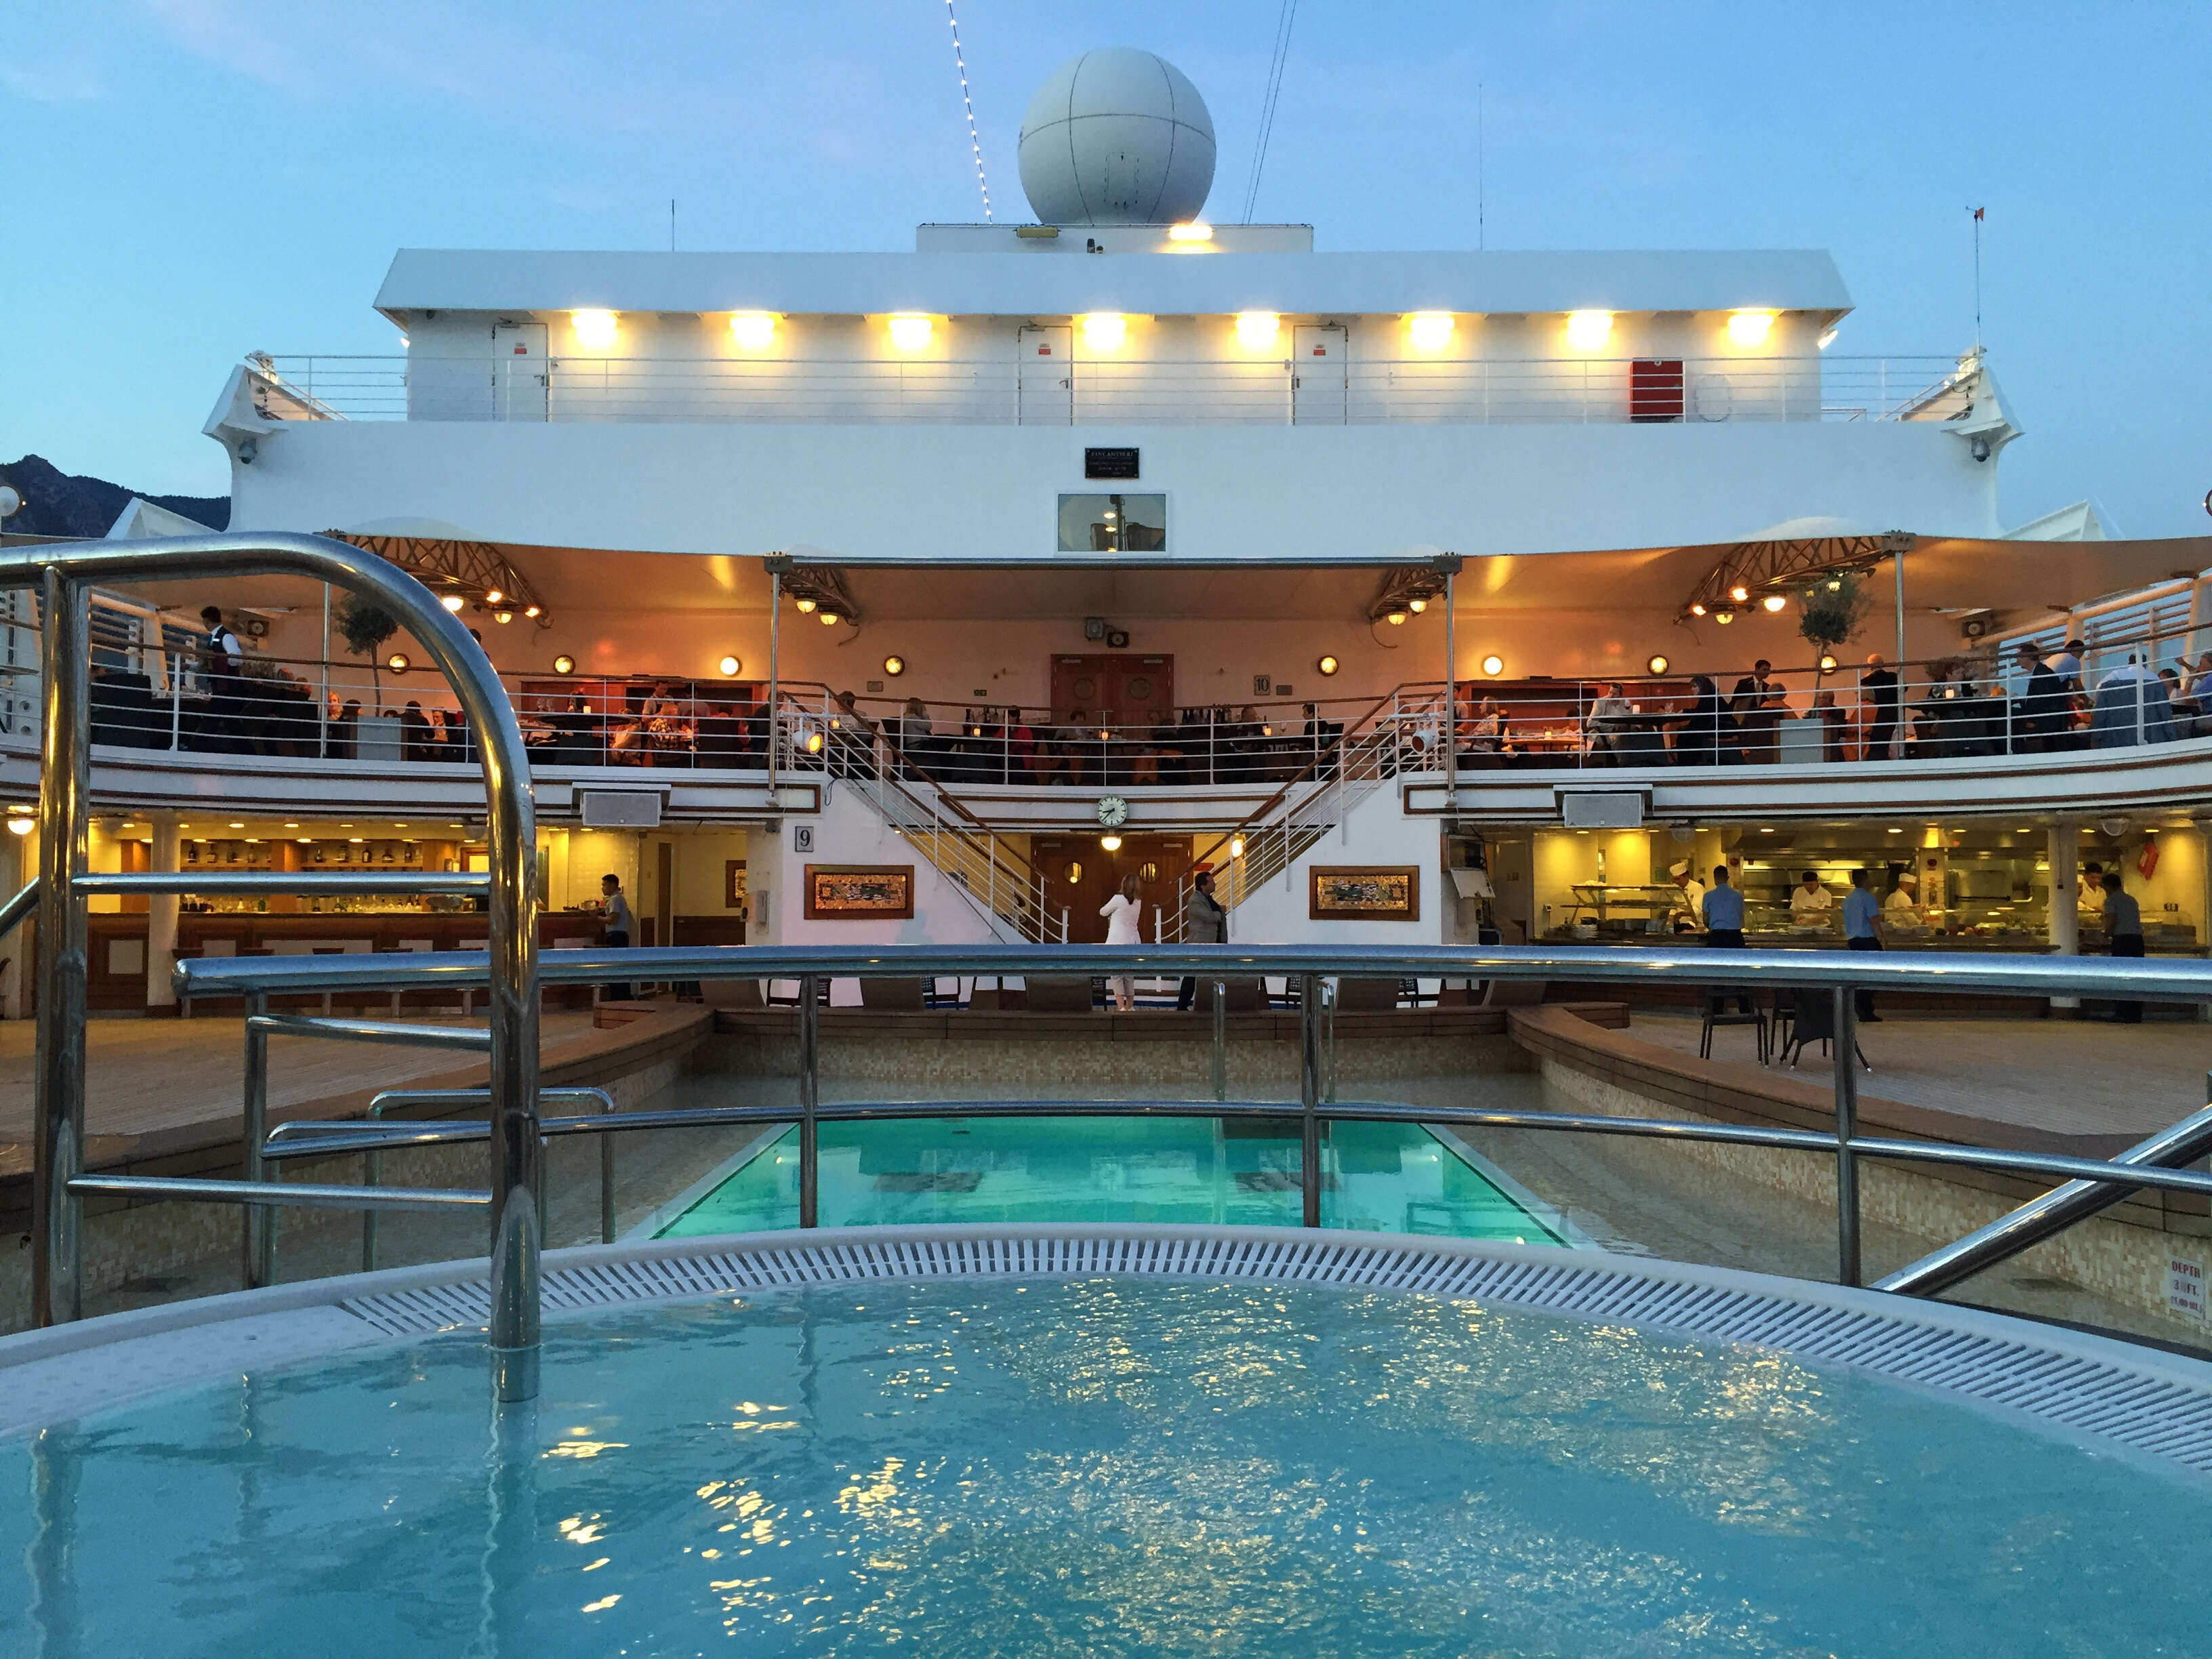 Book Now and Save 10% on Silversea Luxury Cruises